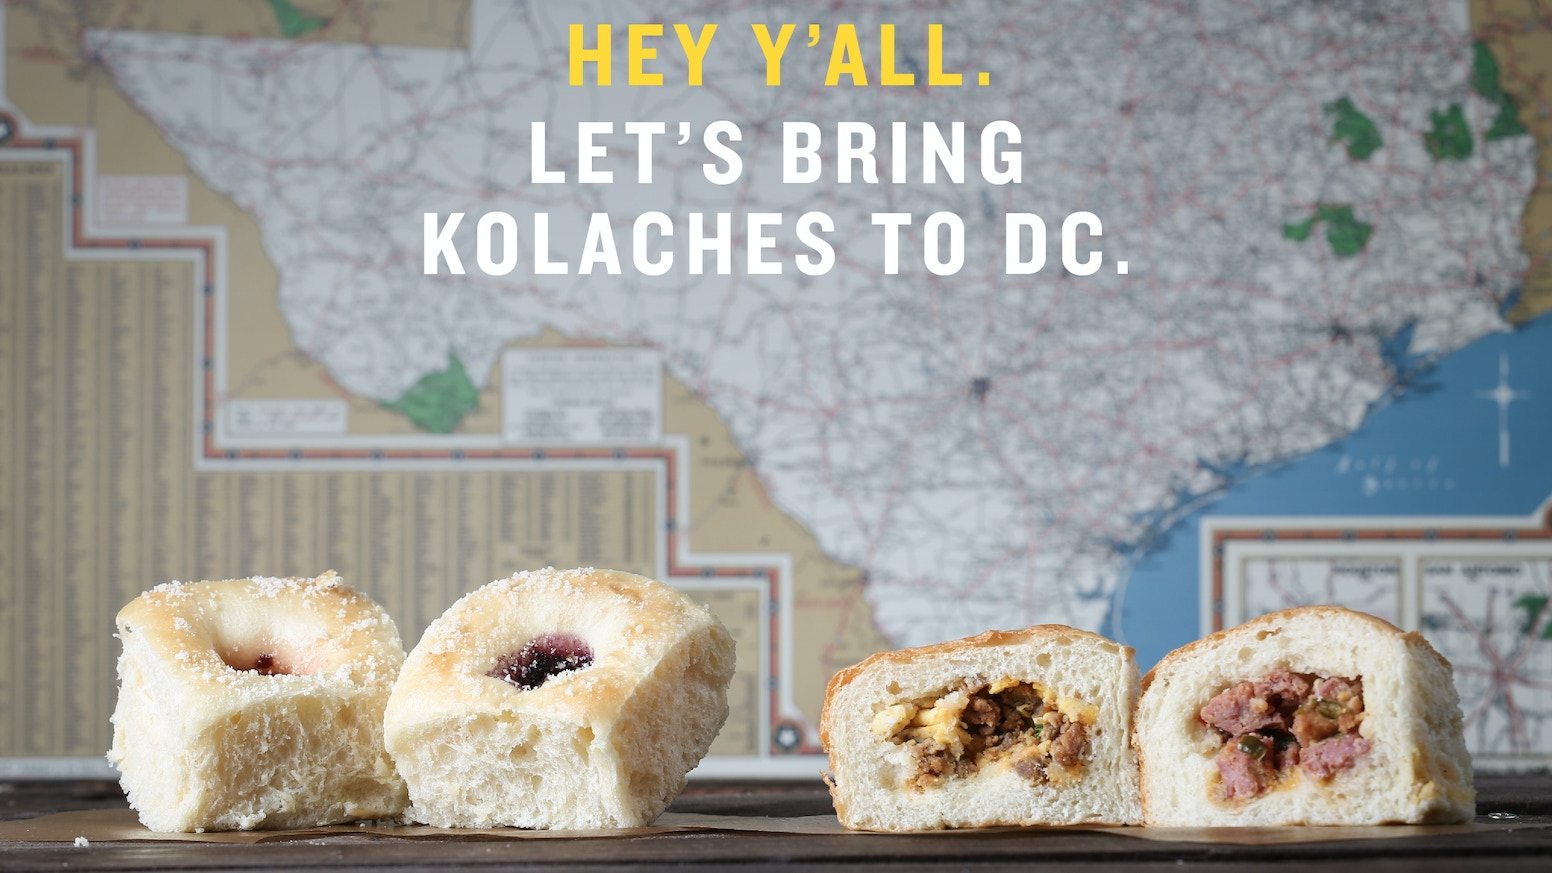 The kolache is a Czech-Texan pastry filled with fruits, sausages, & other awesome stuff. We're bringing 'em to DC but need your help.